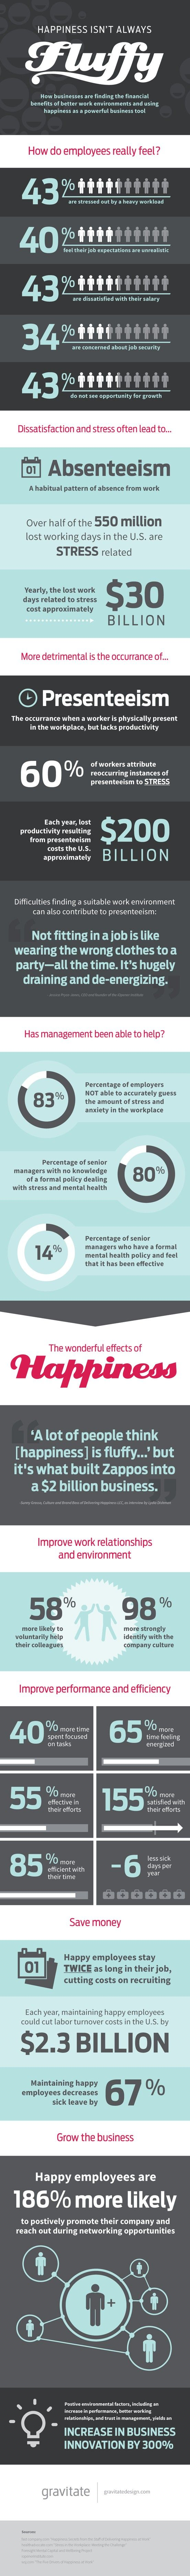 Dealing-With-Uphappy-Employees